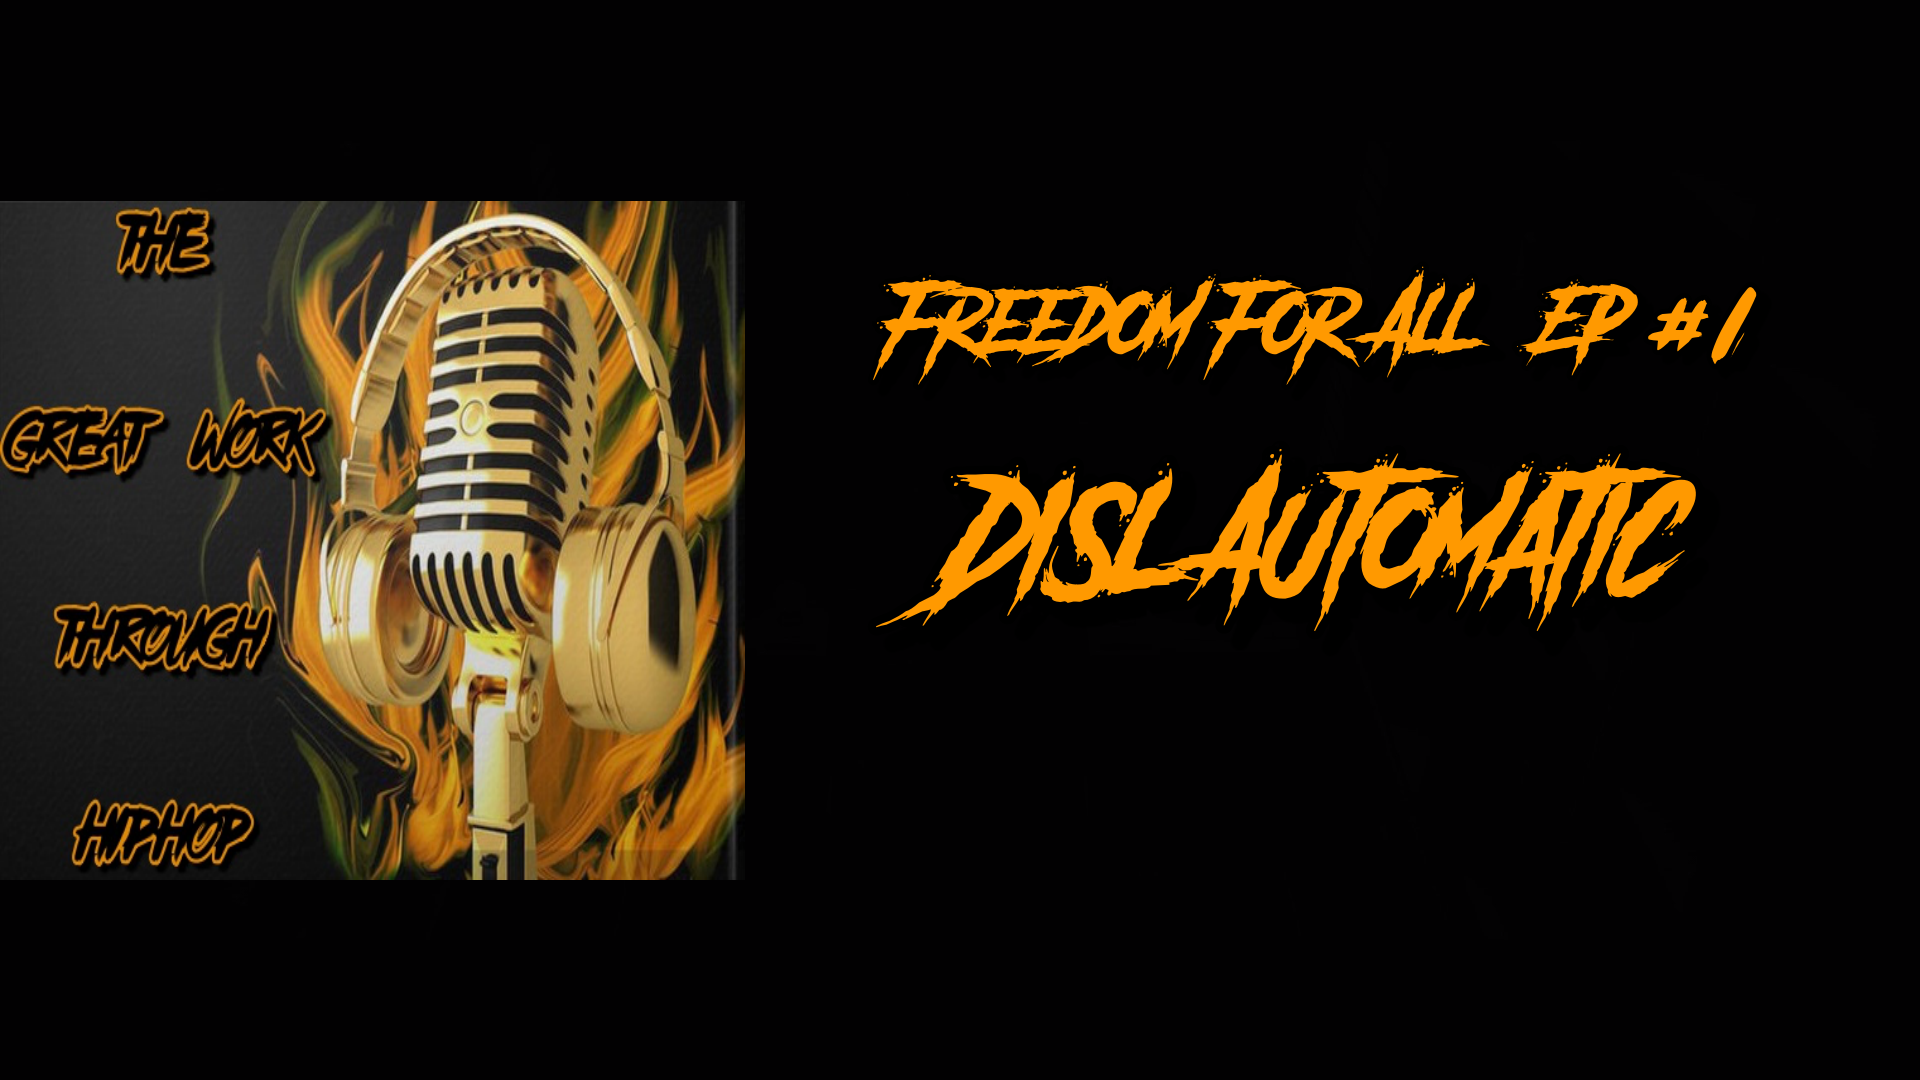 DISL Automatic Podcast artwork